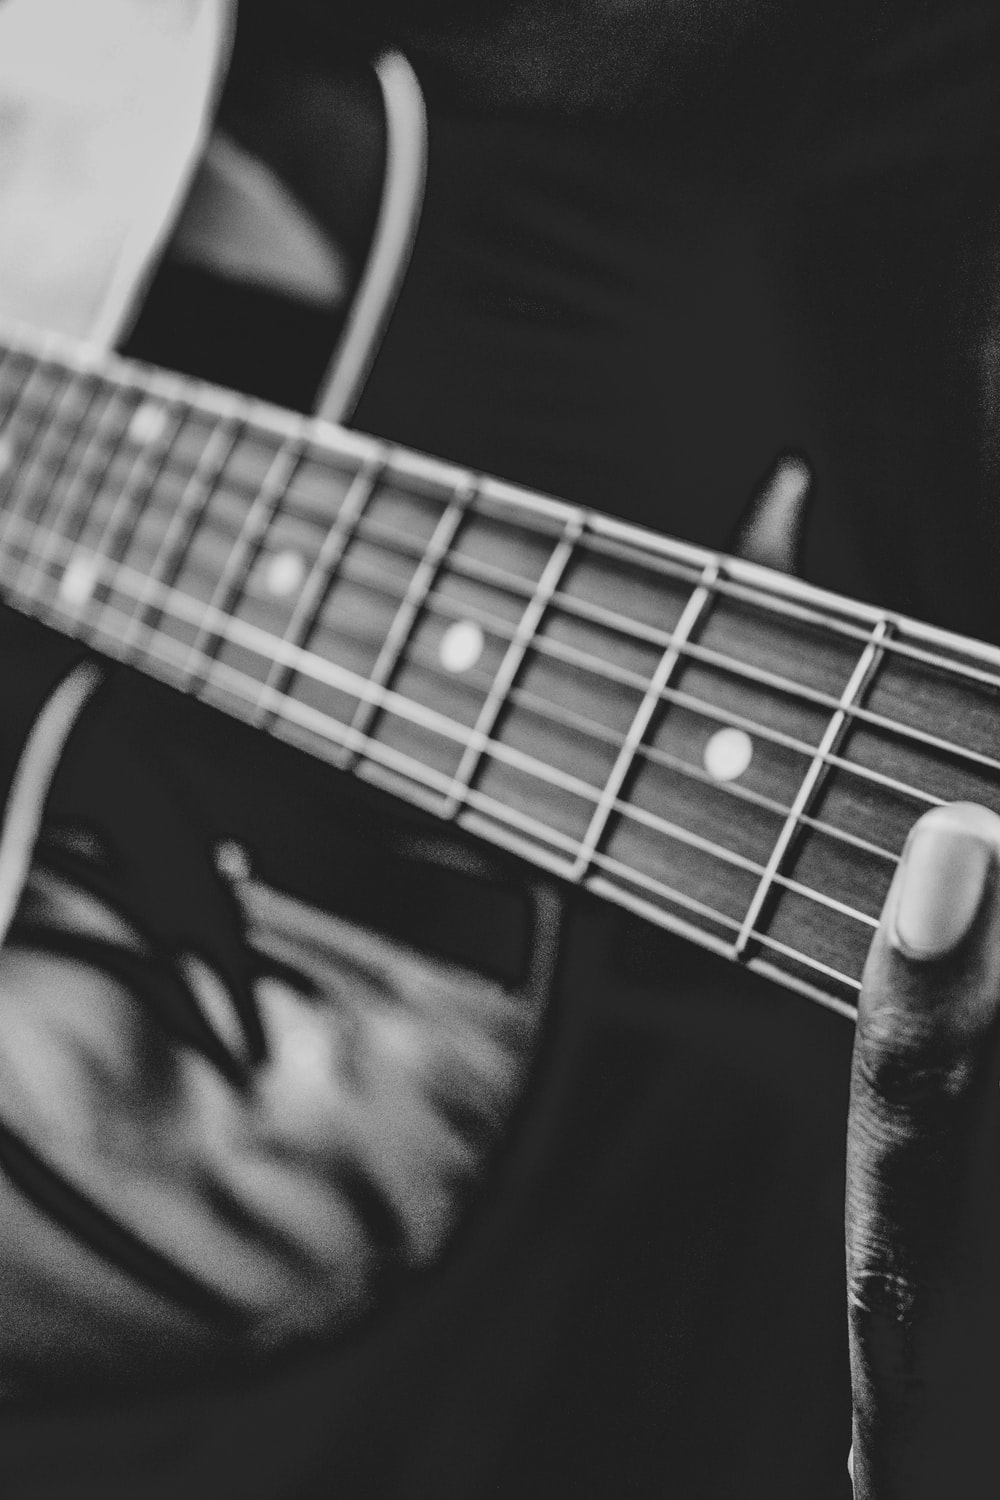 Black And White Guitar Pictures Download Free Images On Unsplash